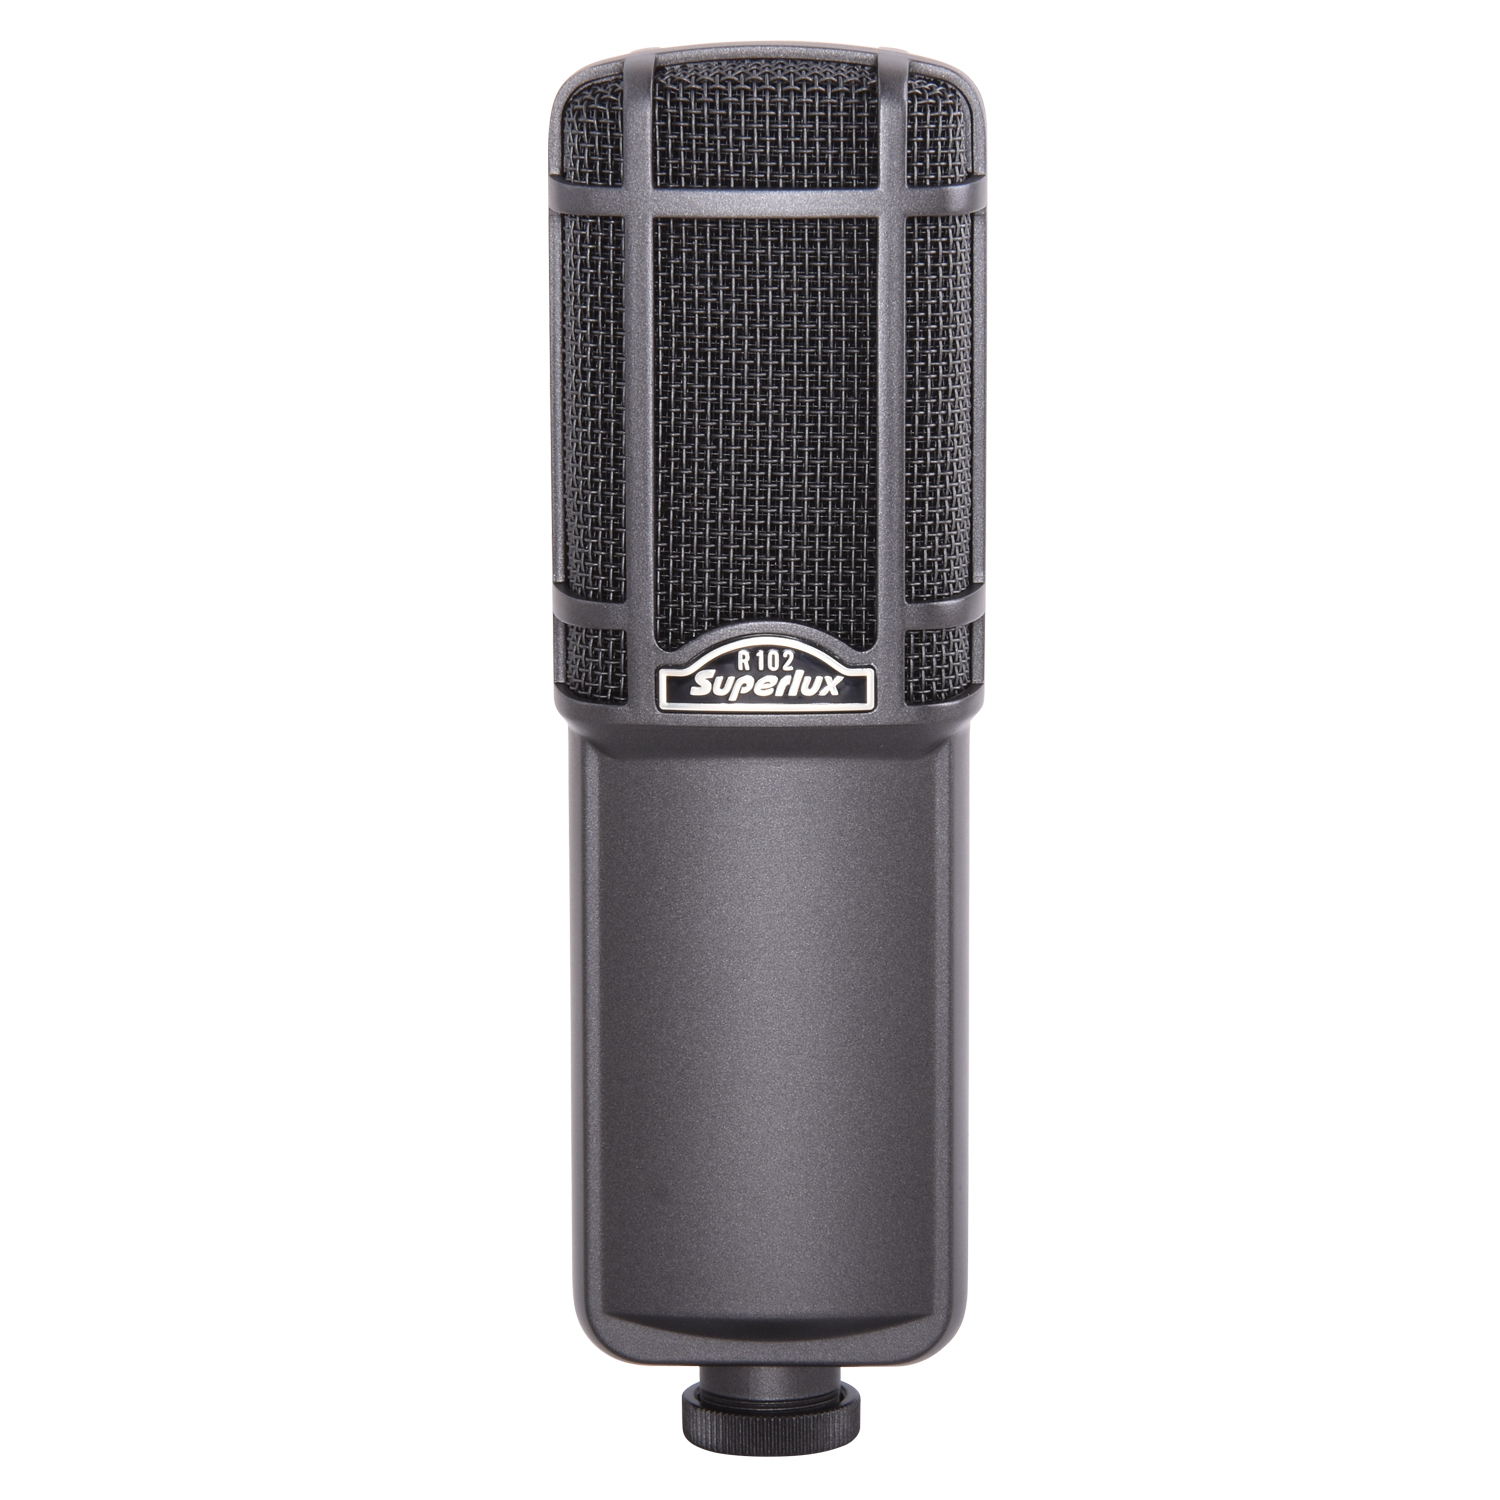 Superlux R102, one of the best cheap ribbon mics